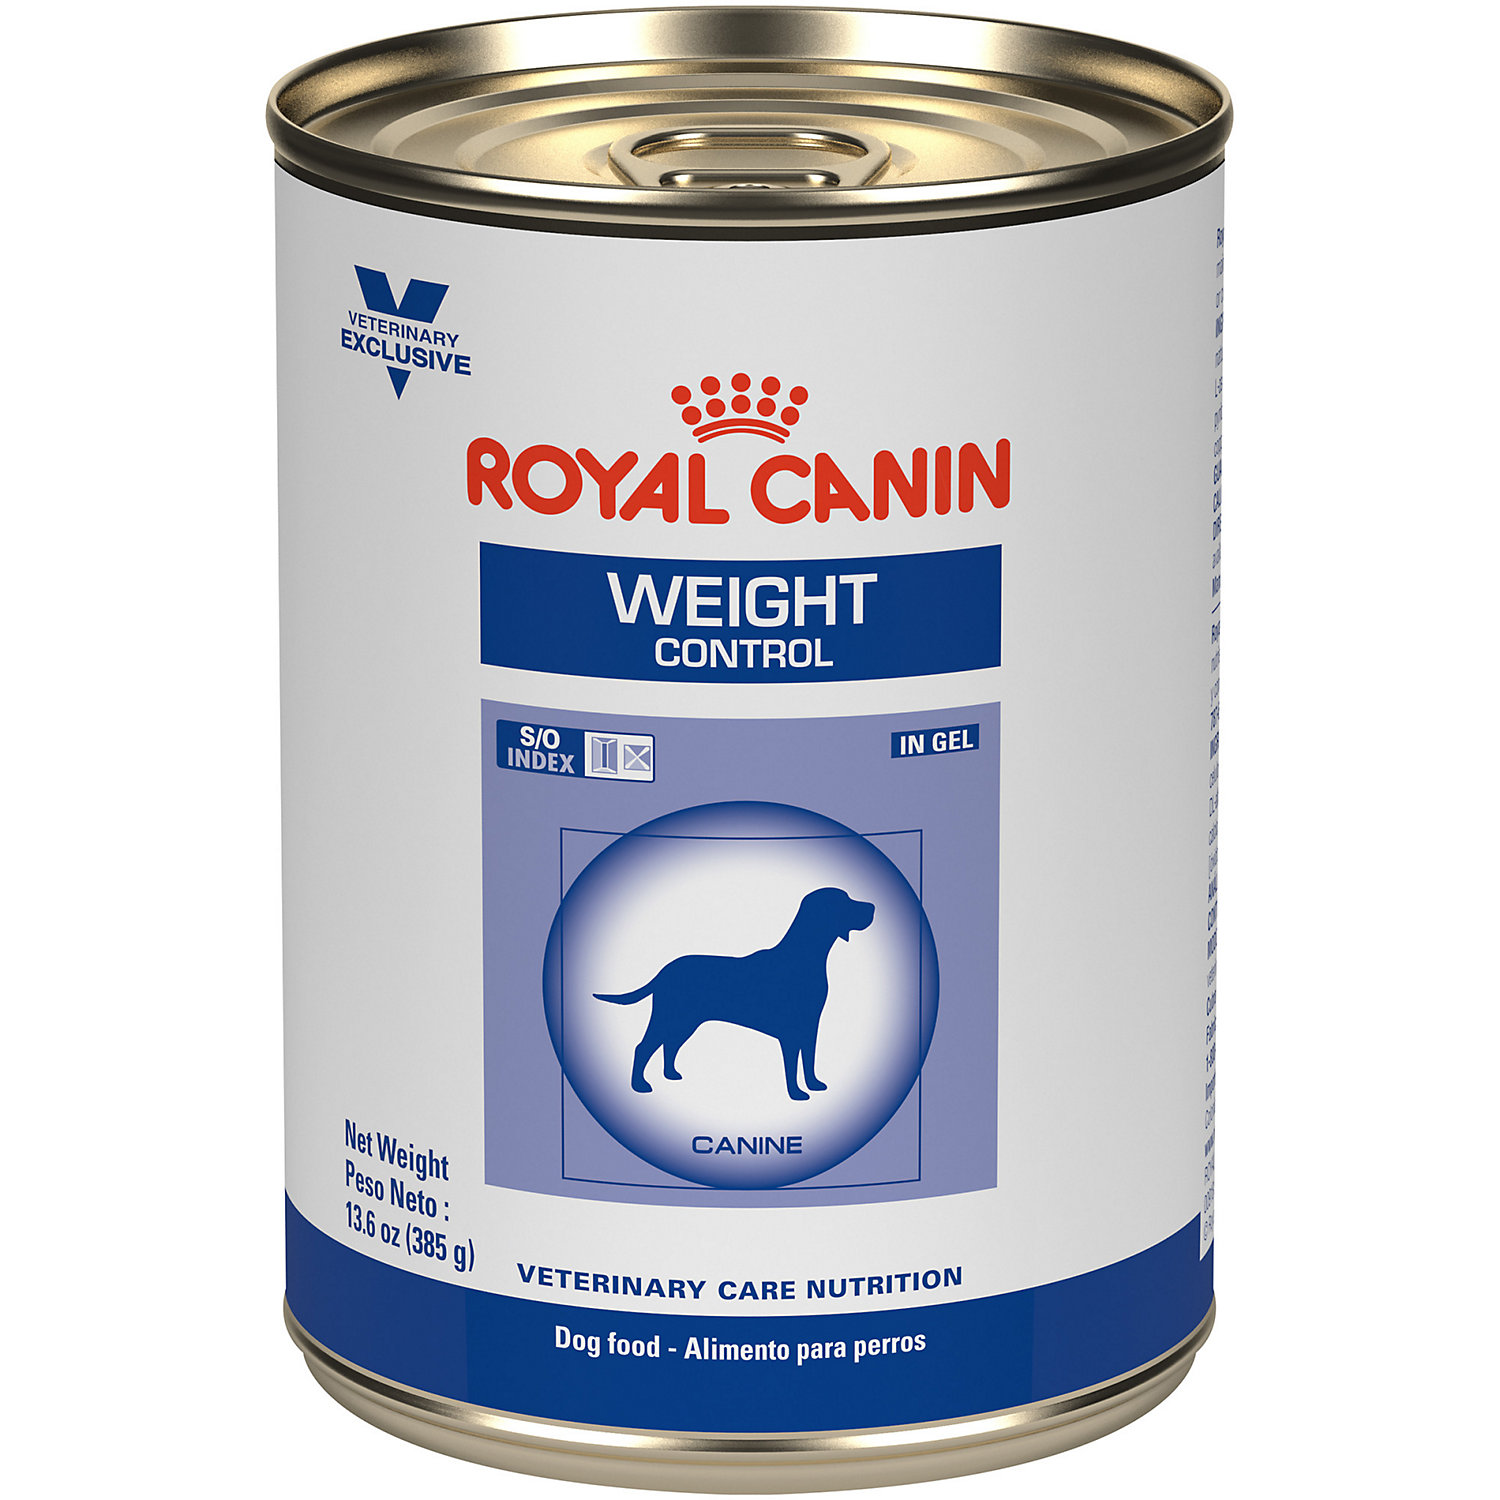 Royal Canin Veterinary Care Nutrition Canine Weight Control In Gel Wet Dog Food